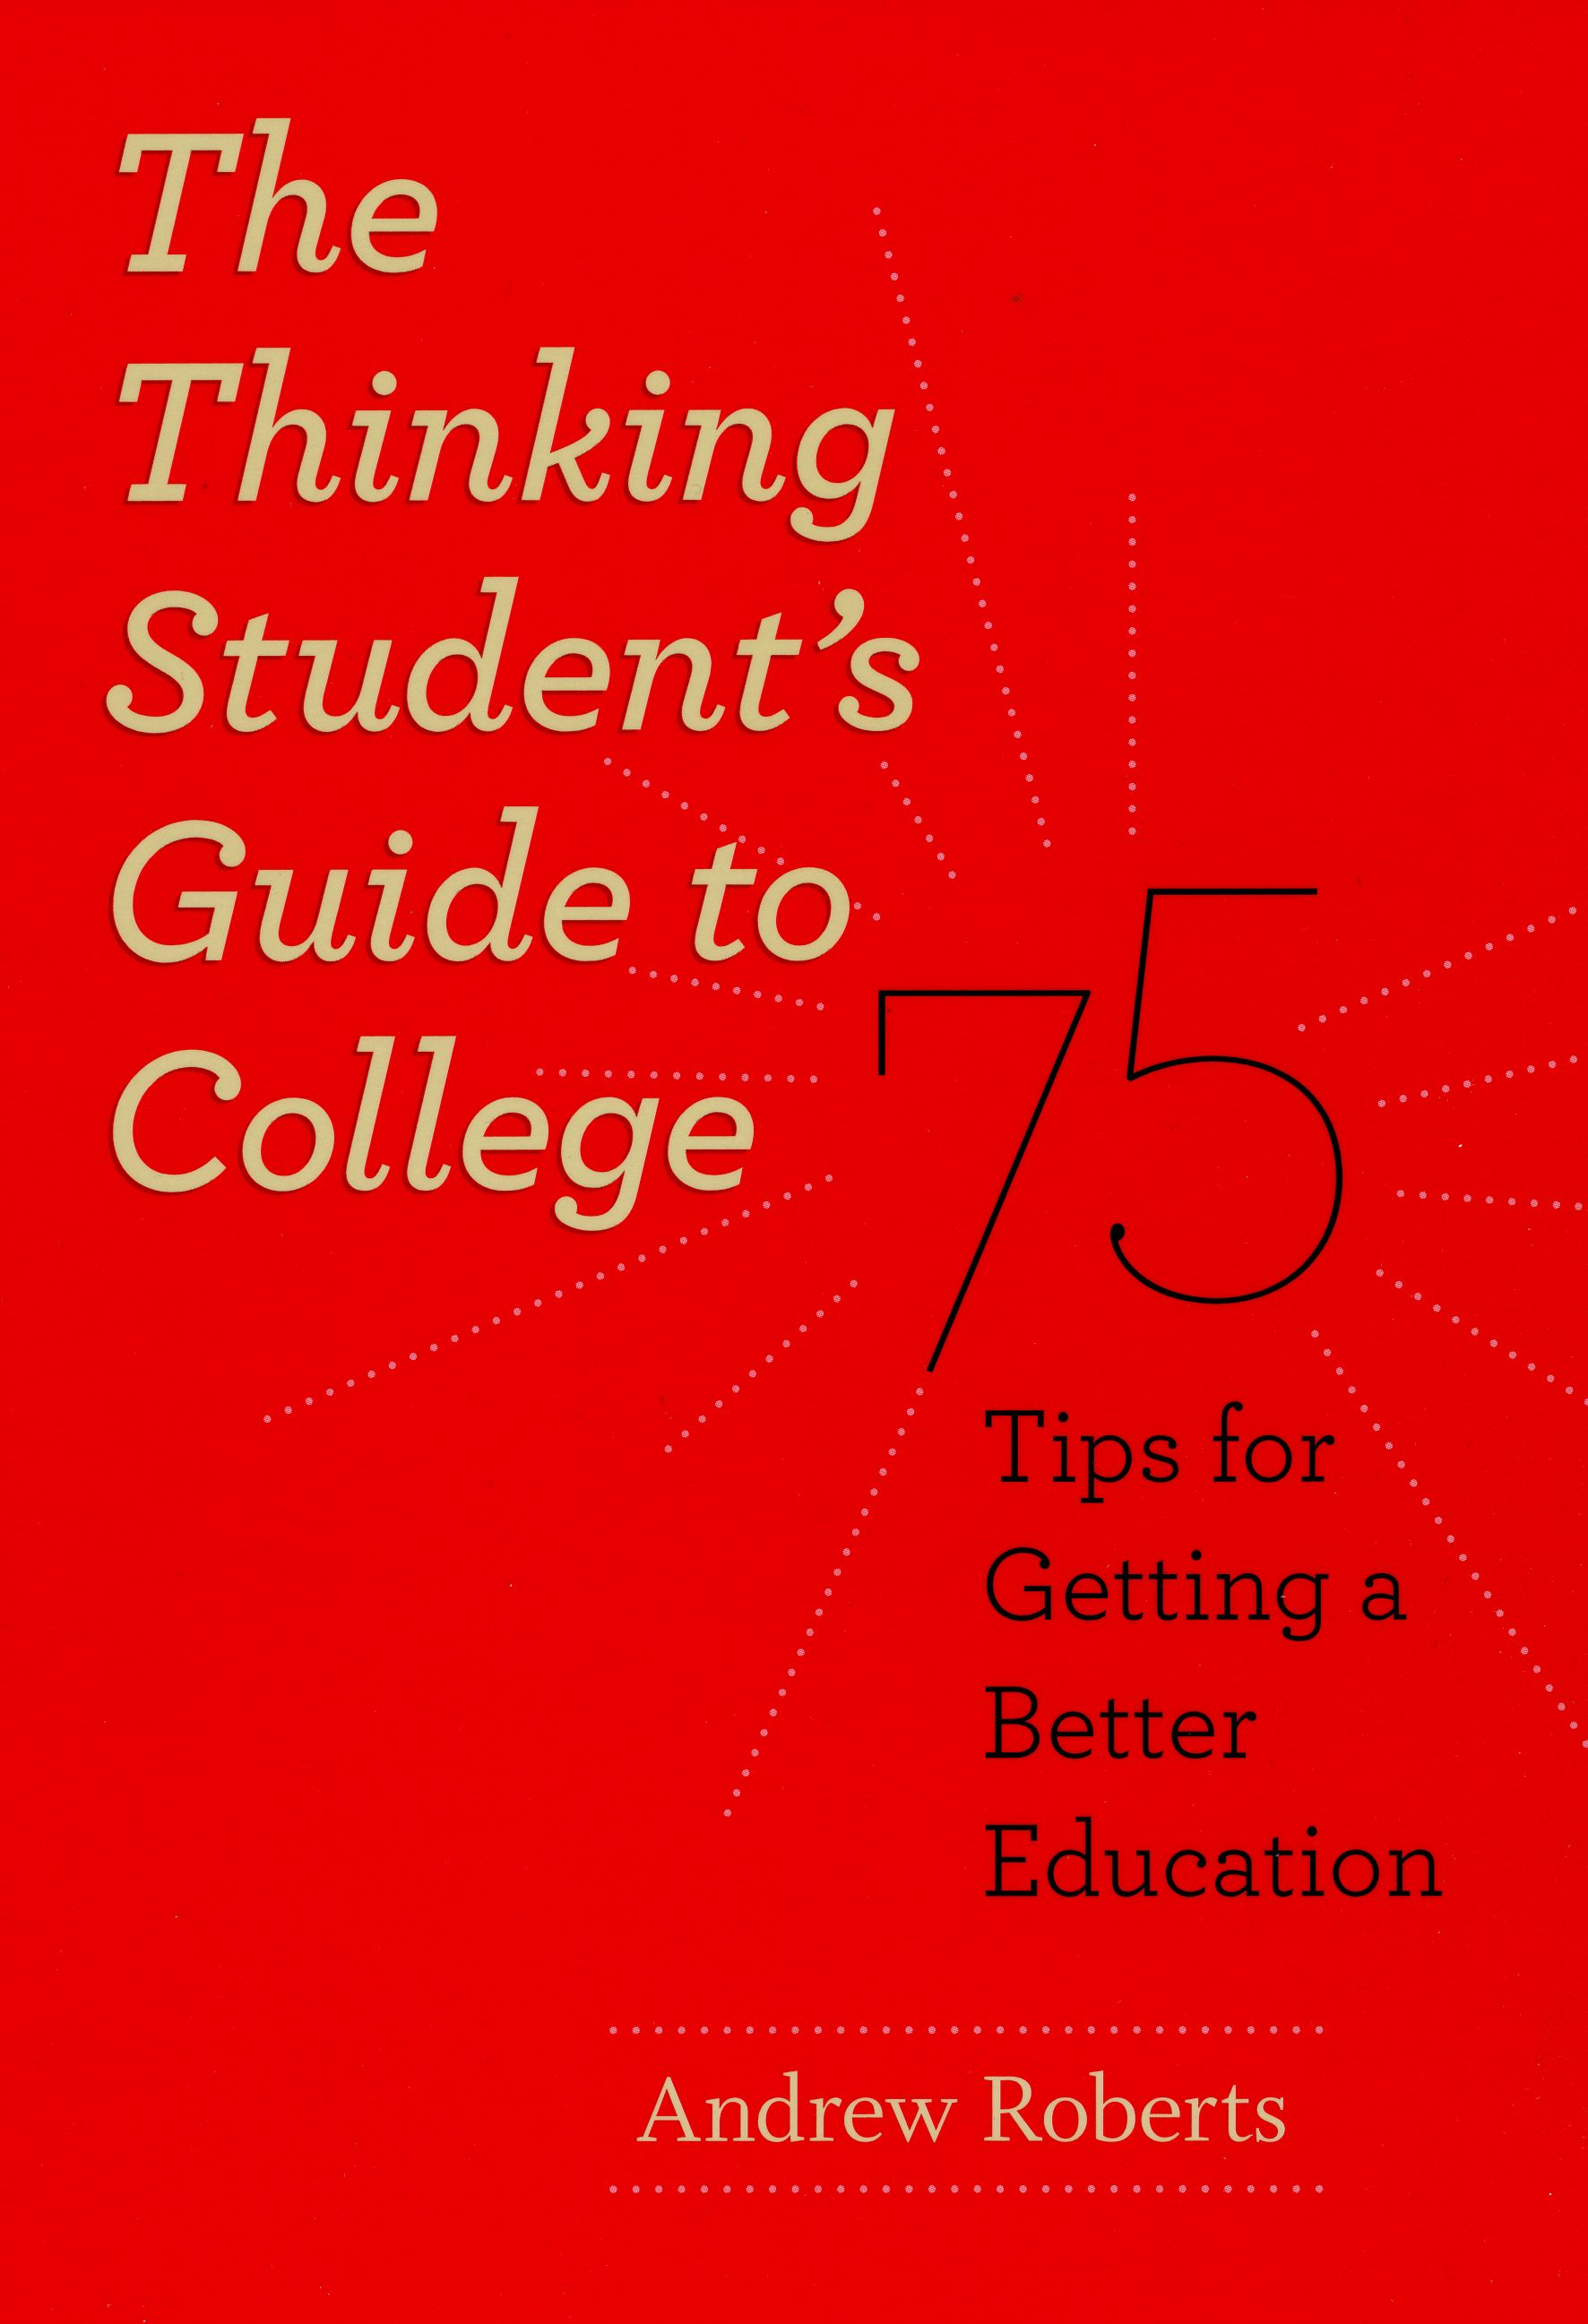 The Thinking Student's Guide to College: 75 Tips for Getting a Better Education